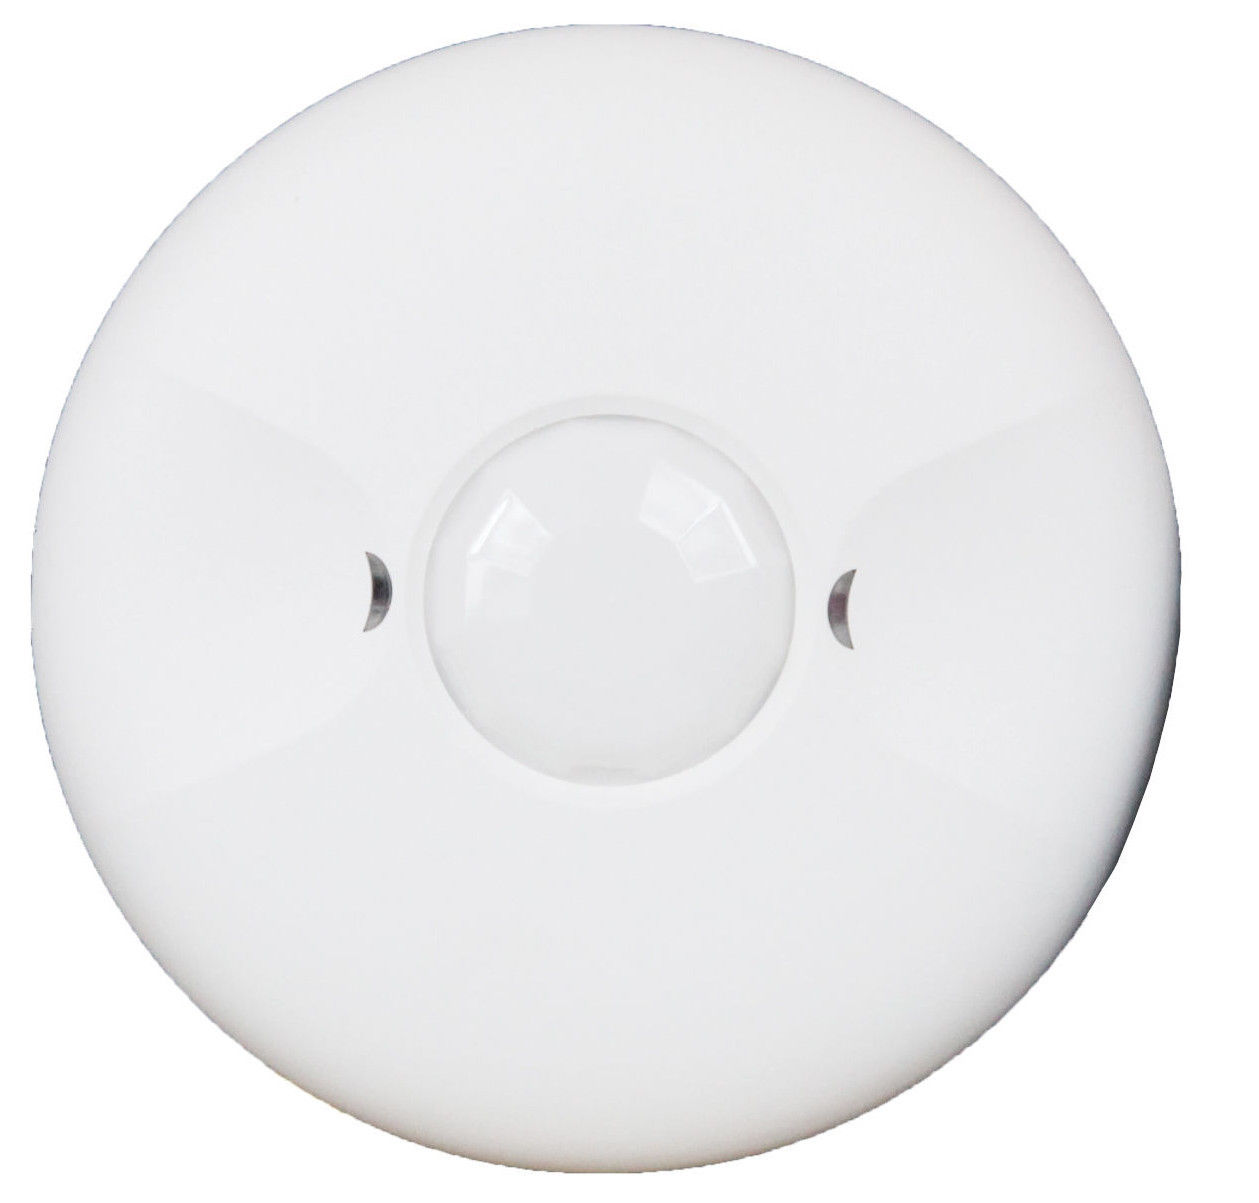 ceiling-sensor-light-switch-photo-11